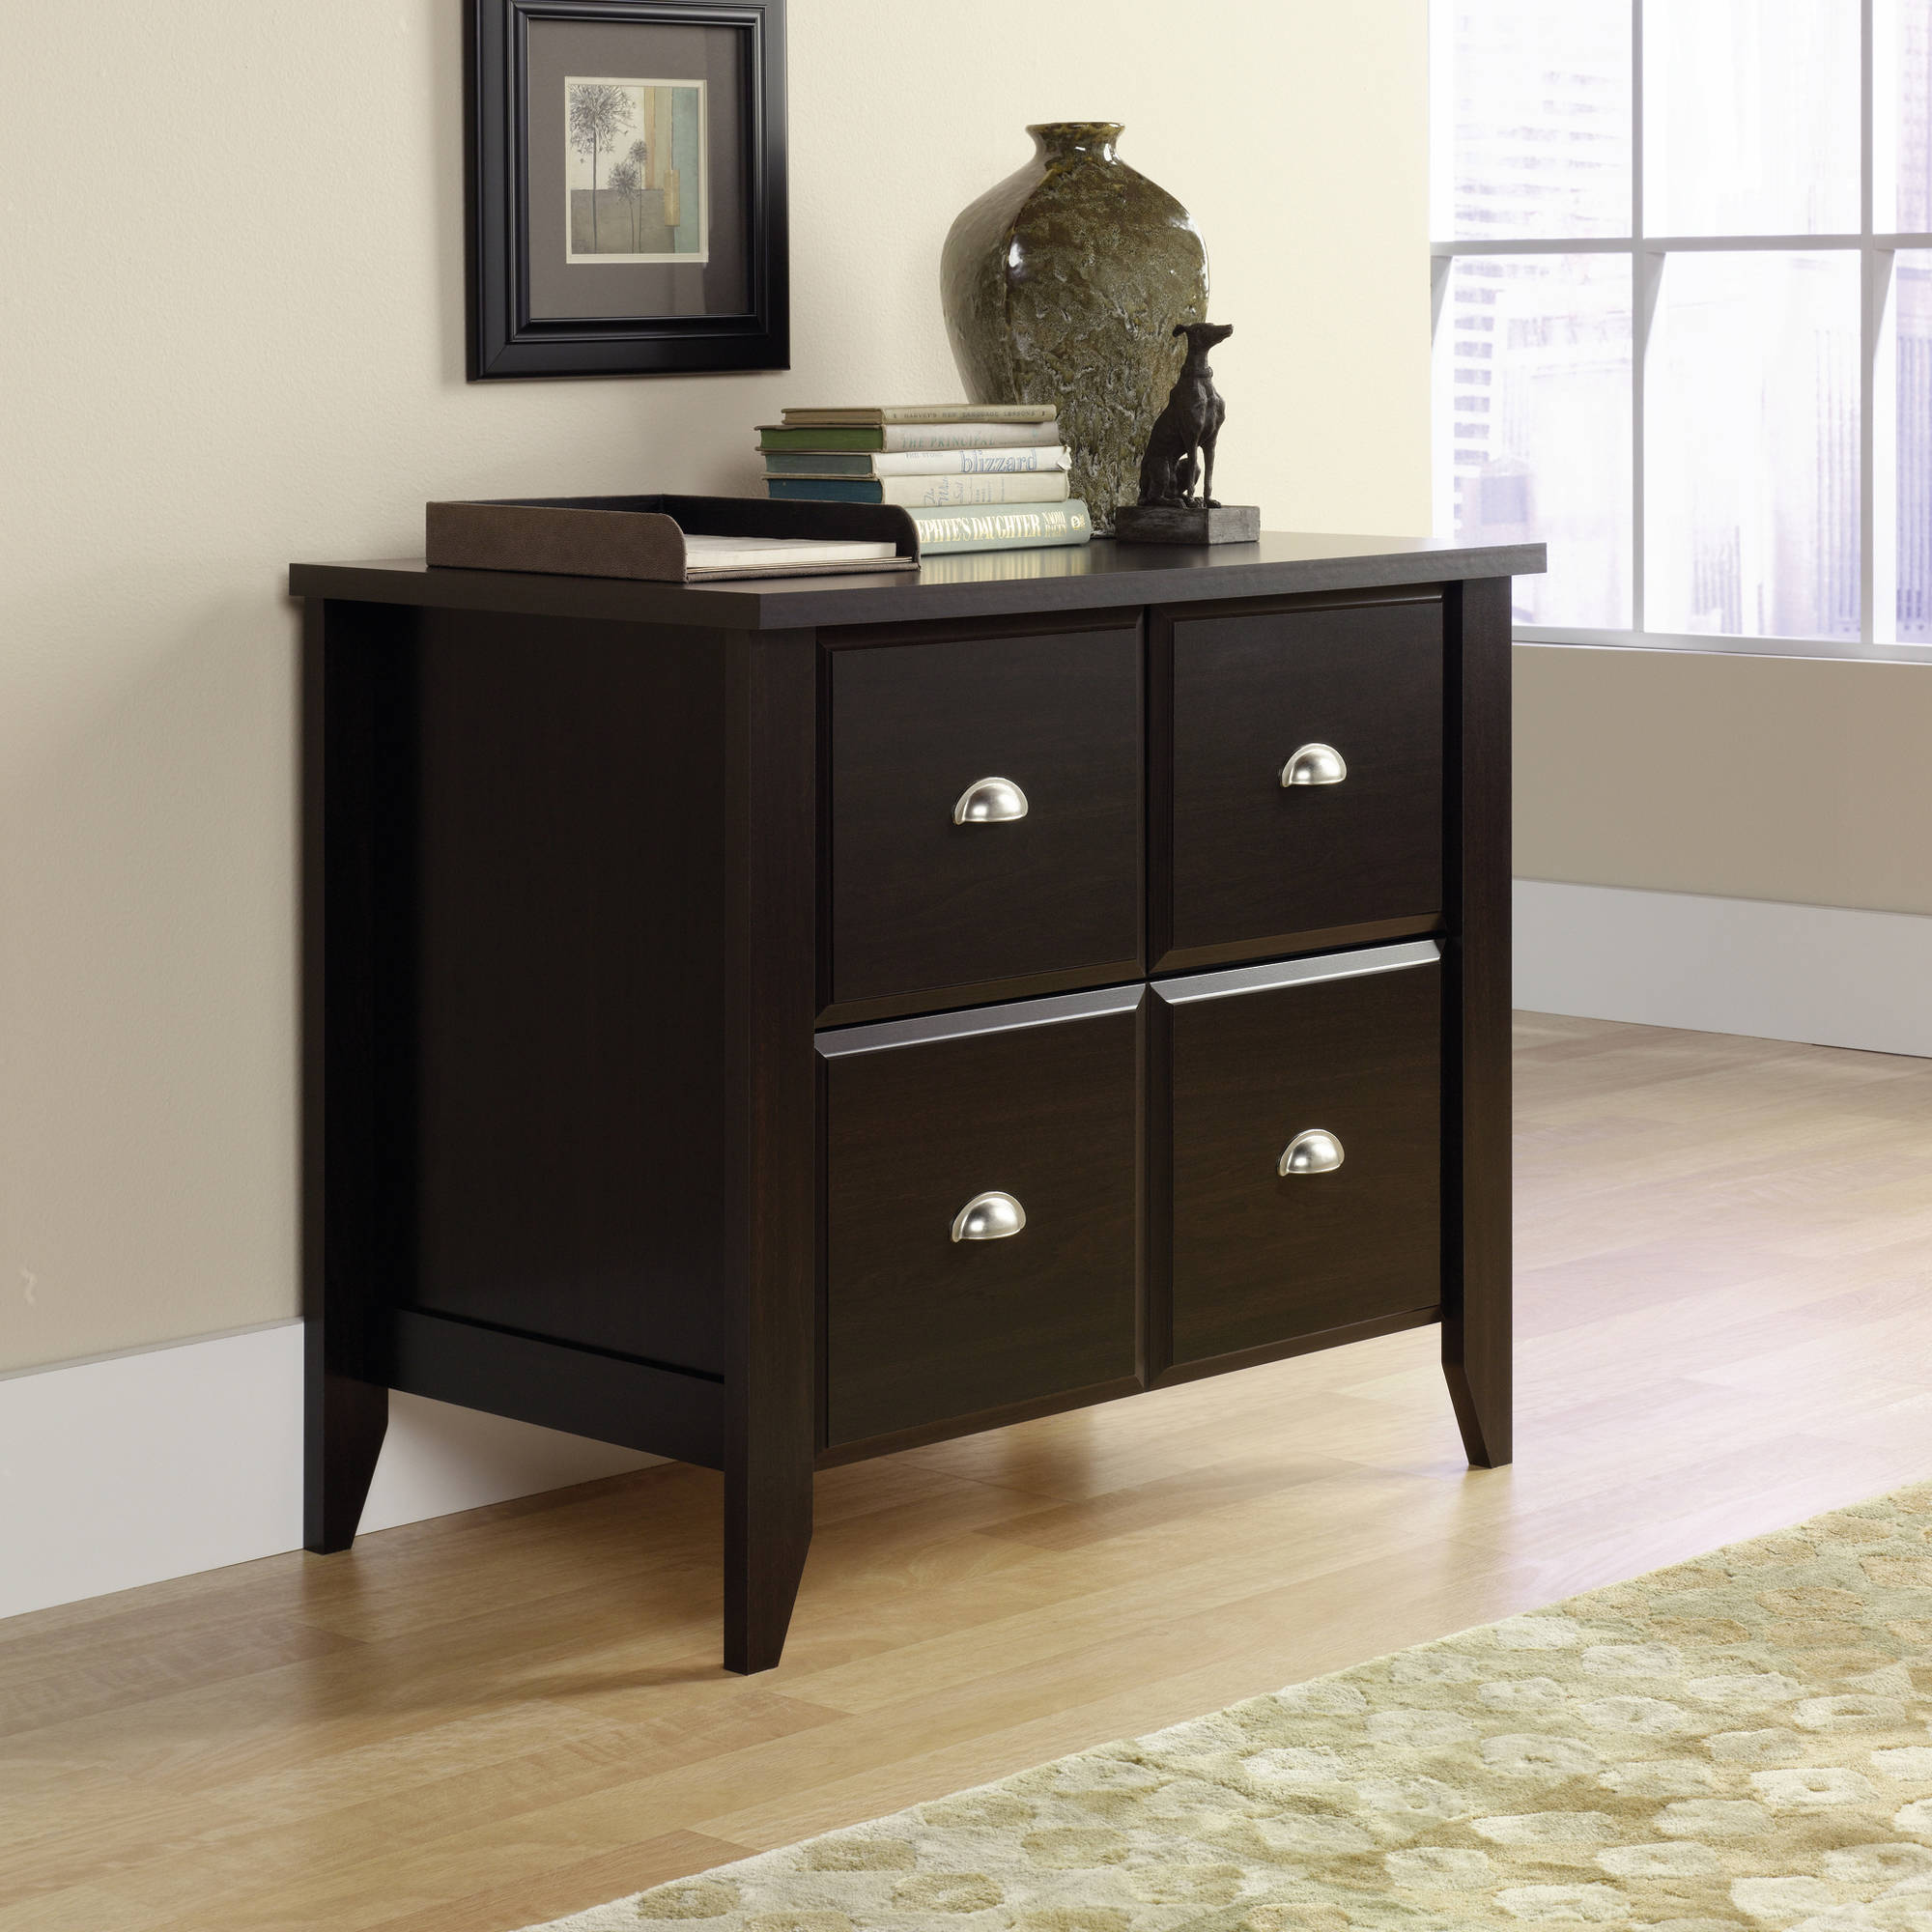 Sauder Shoal Creek 2 Drawer Lateral File, Jamocha Wood Finish   Walmart.com